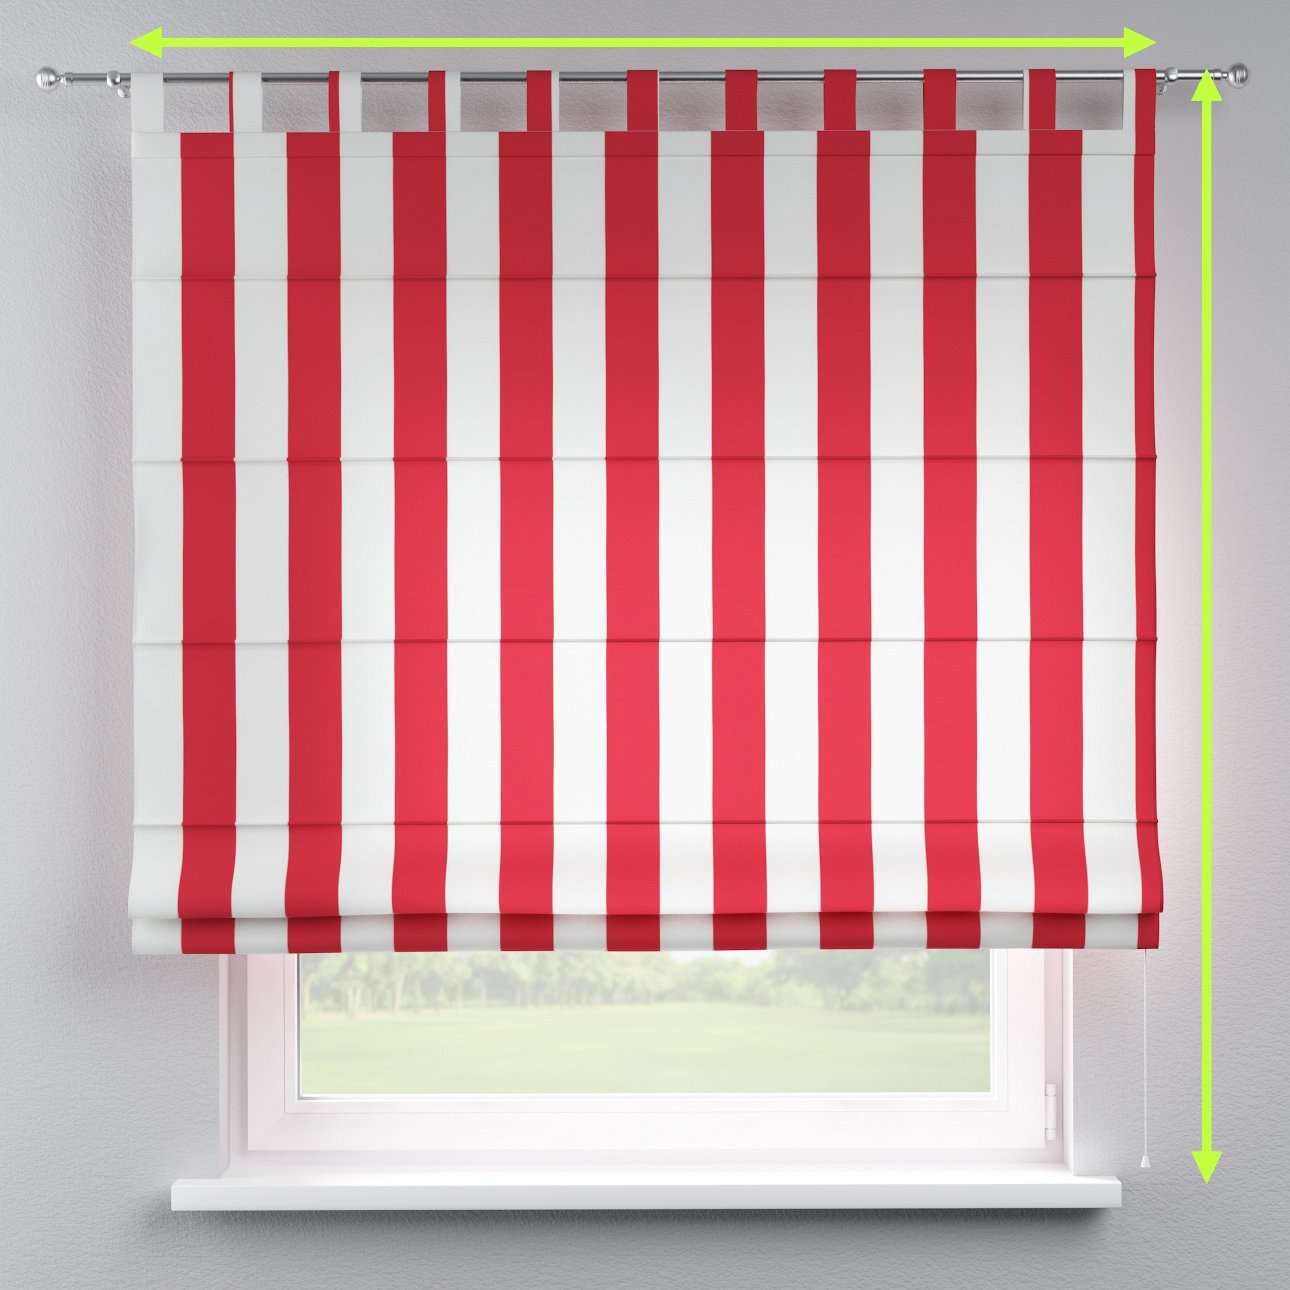 Verona tab top roman blind in collection Comics/Geometrical, fabric: 137-54